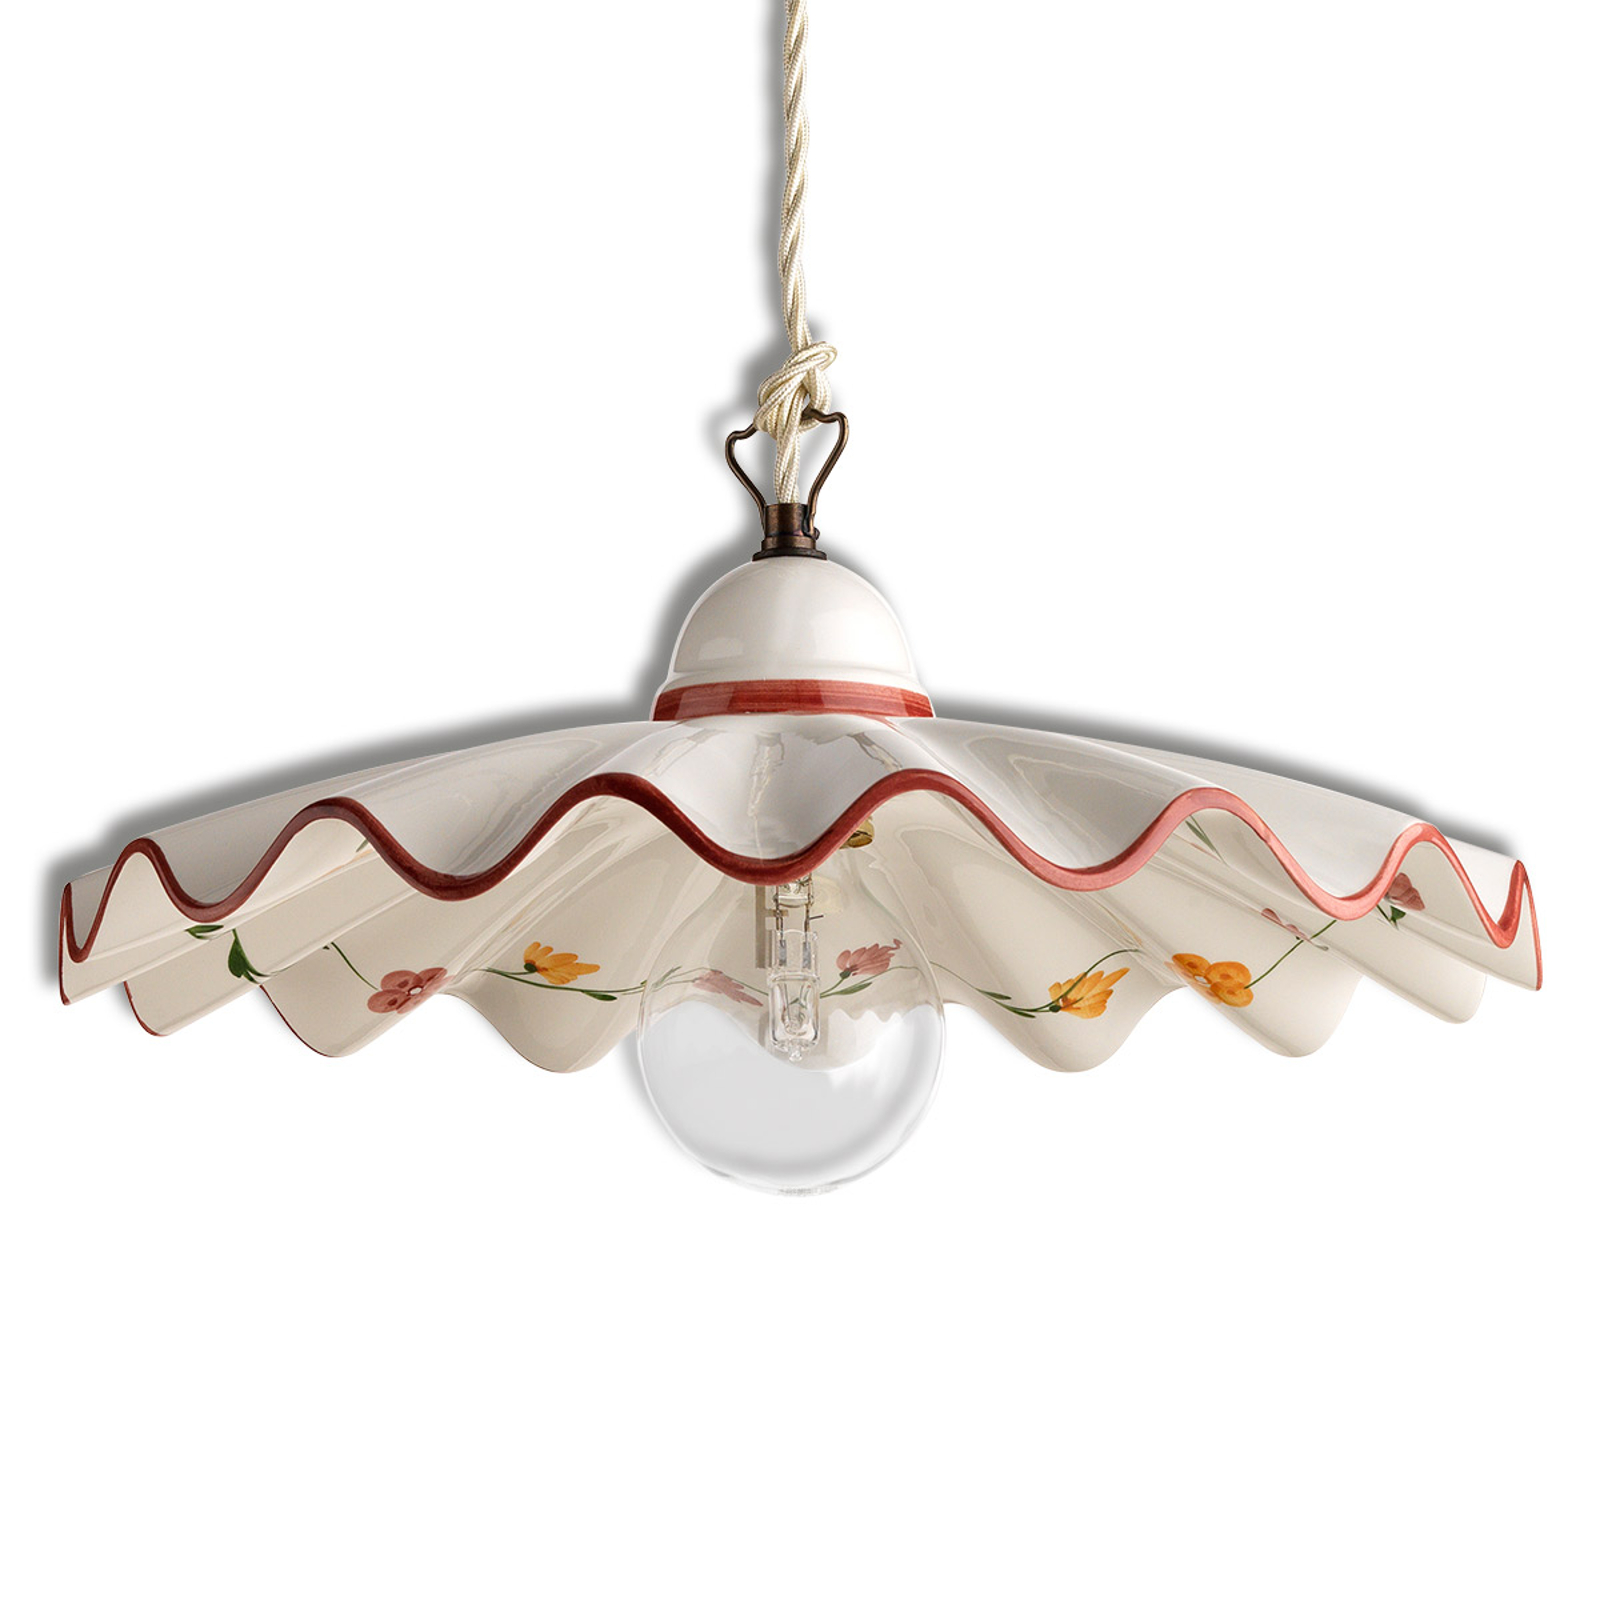 Ceramic hanging light Ametista_3046027_1